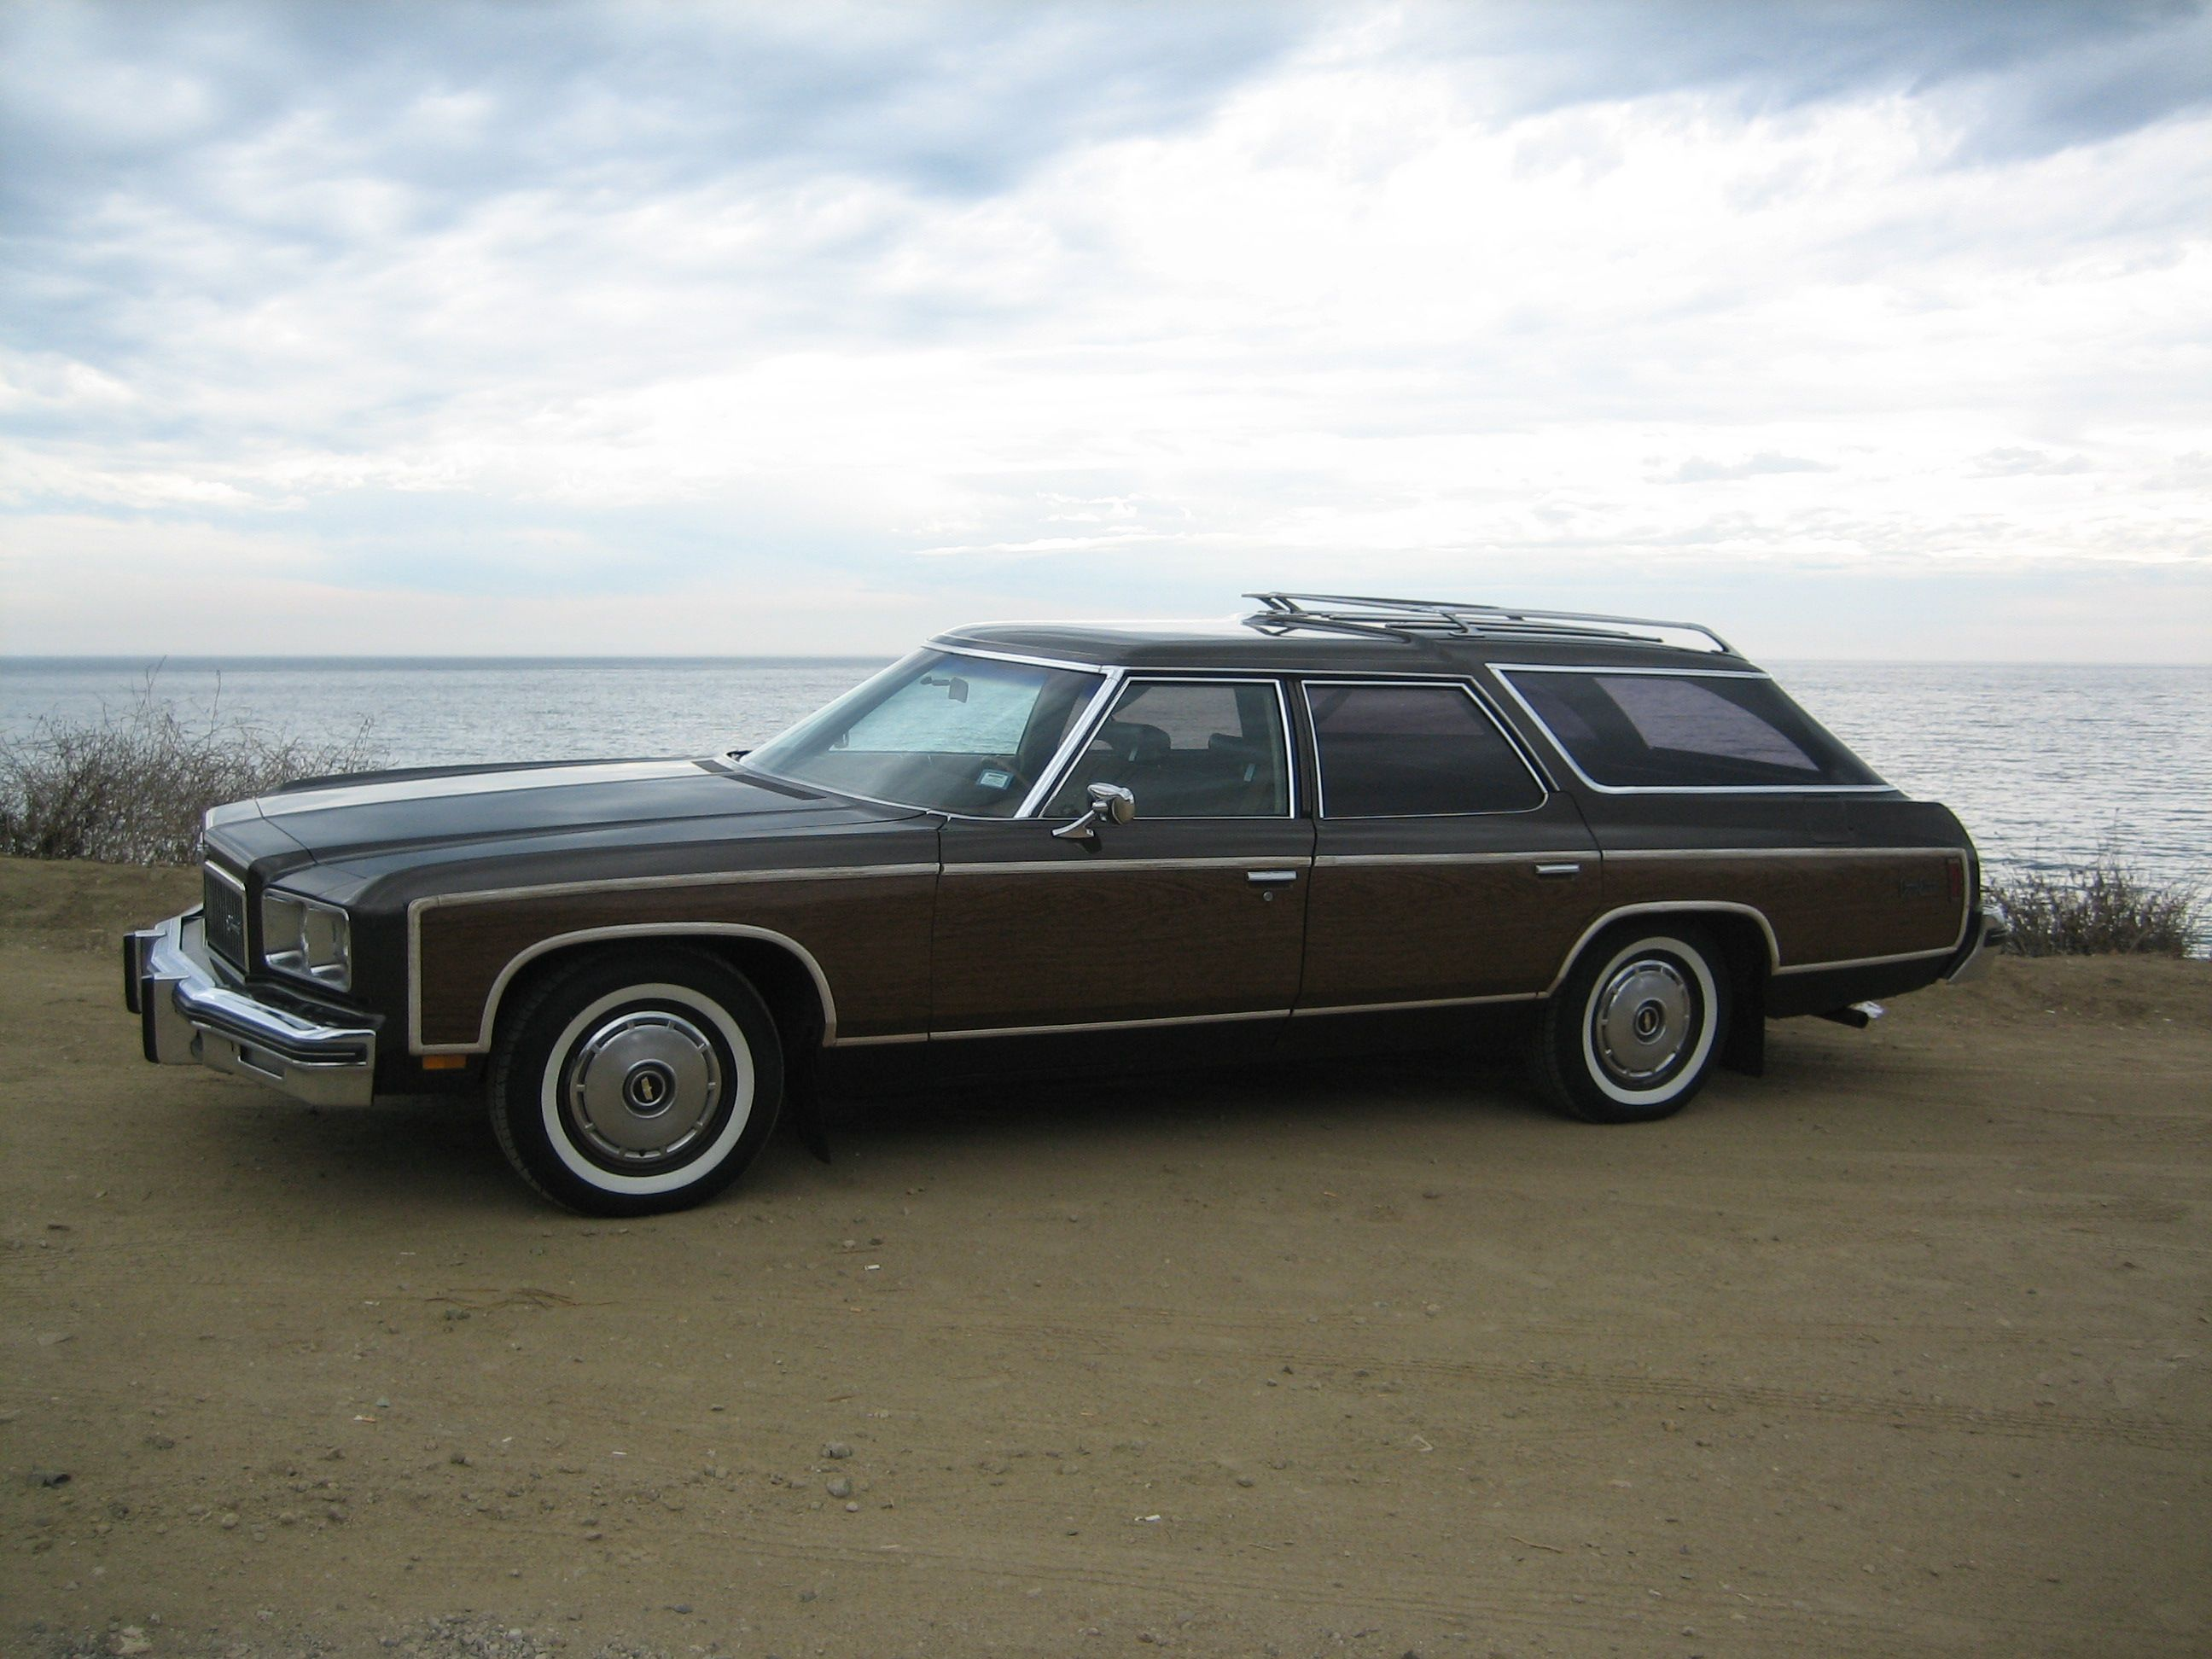 1975 Caprice Estate Wagon Bought It On Guam And Traveled Coast To